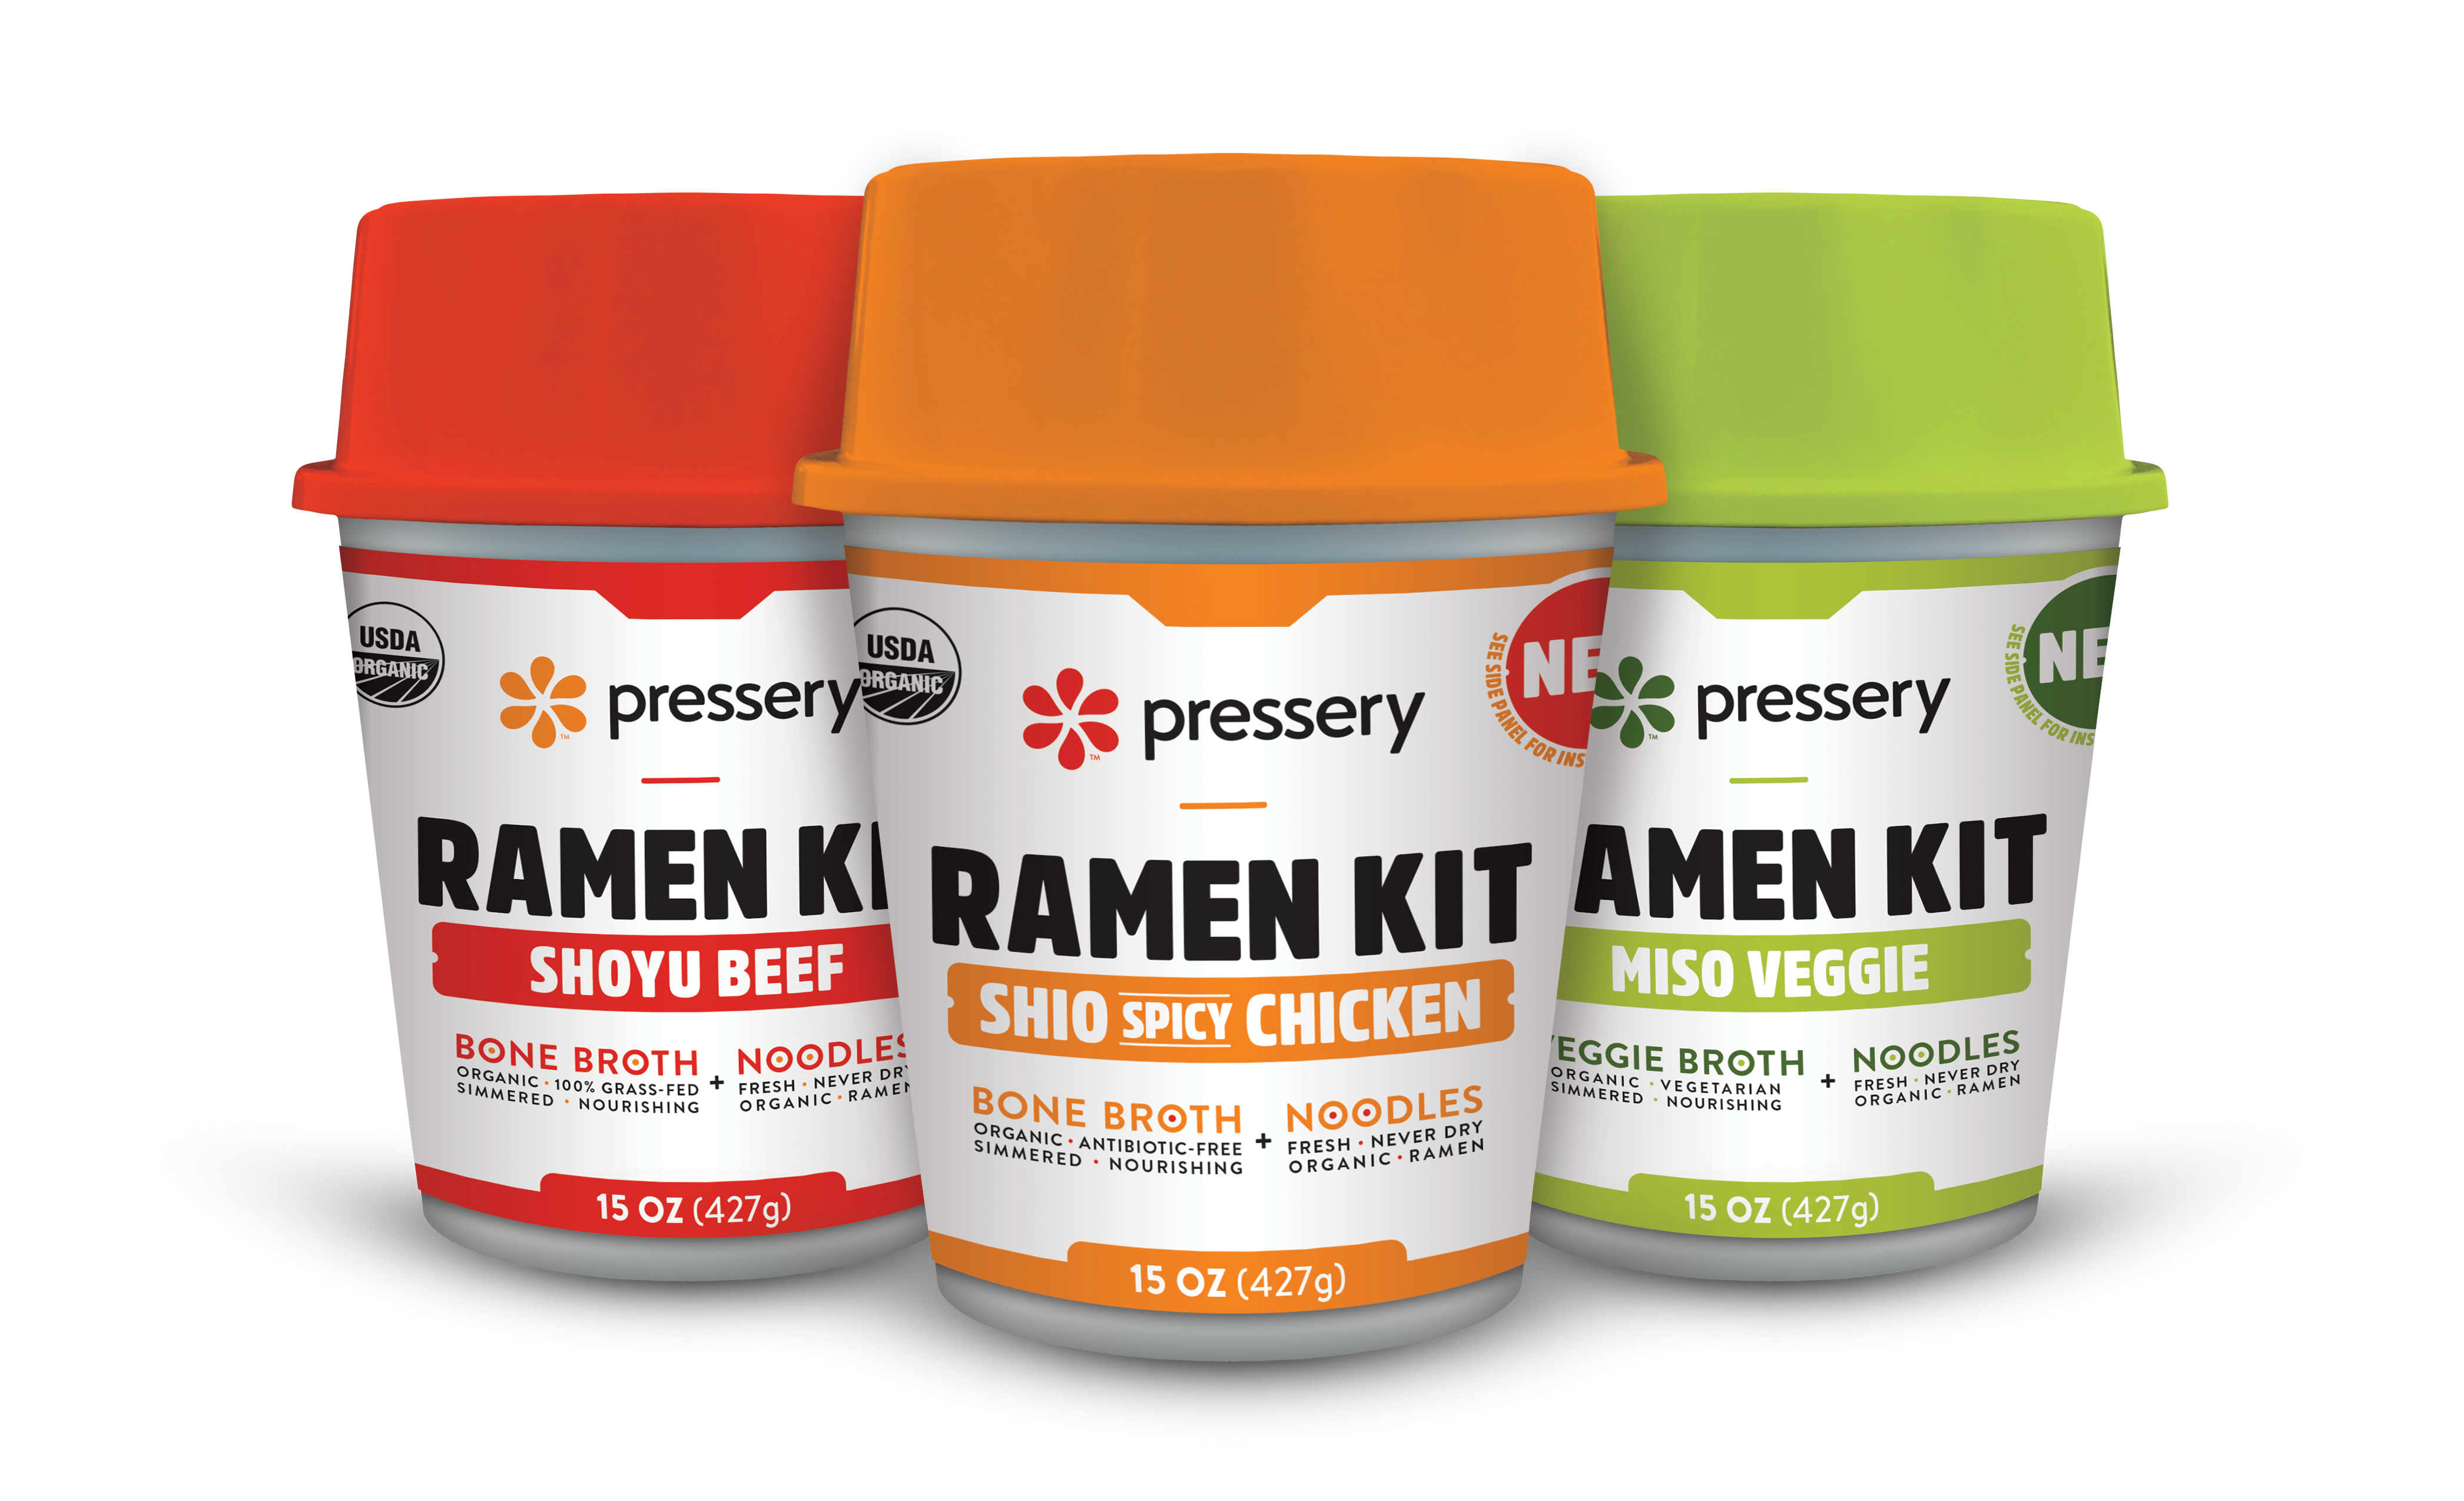 Our ramen kits will be available in three mouthwatering flavors -- Shoyu Beef, Shio Spicy Chicken, and Miso Veggie.